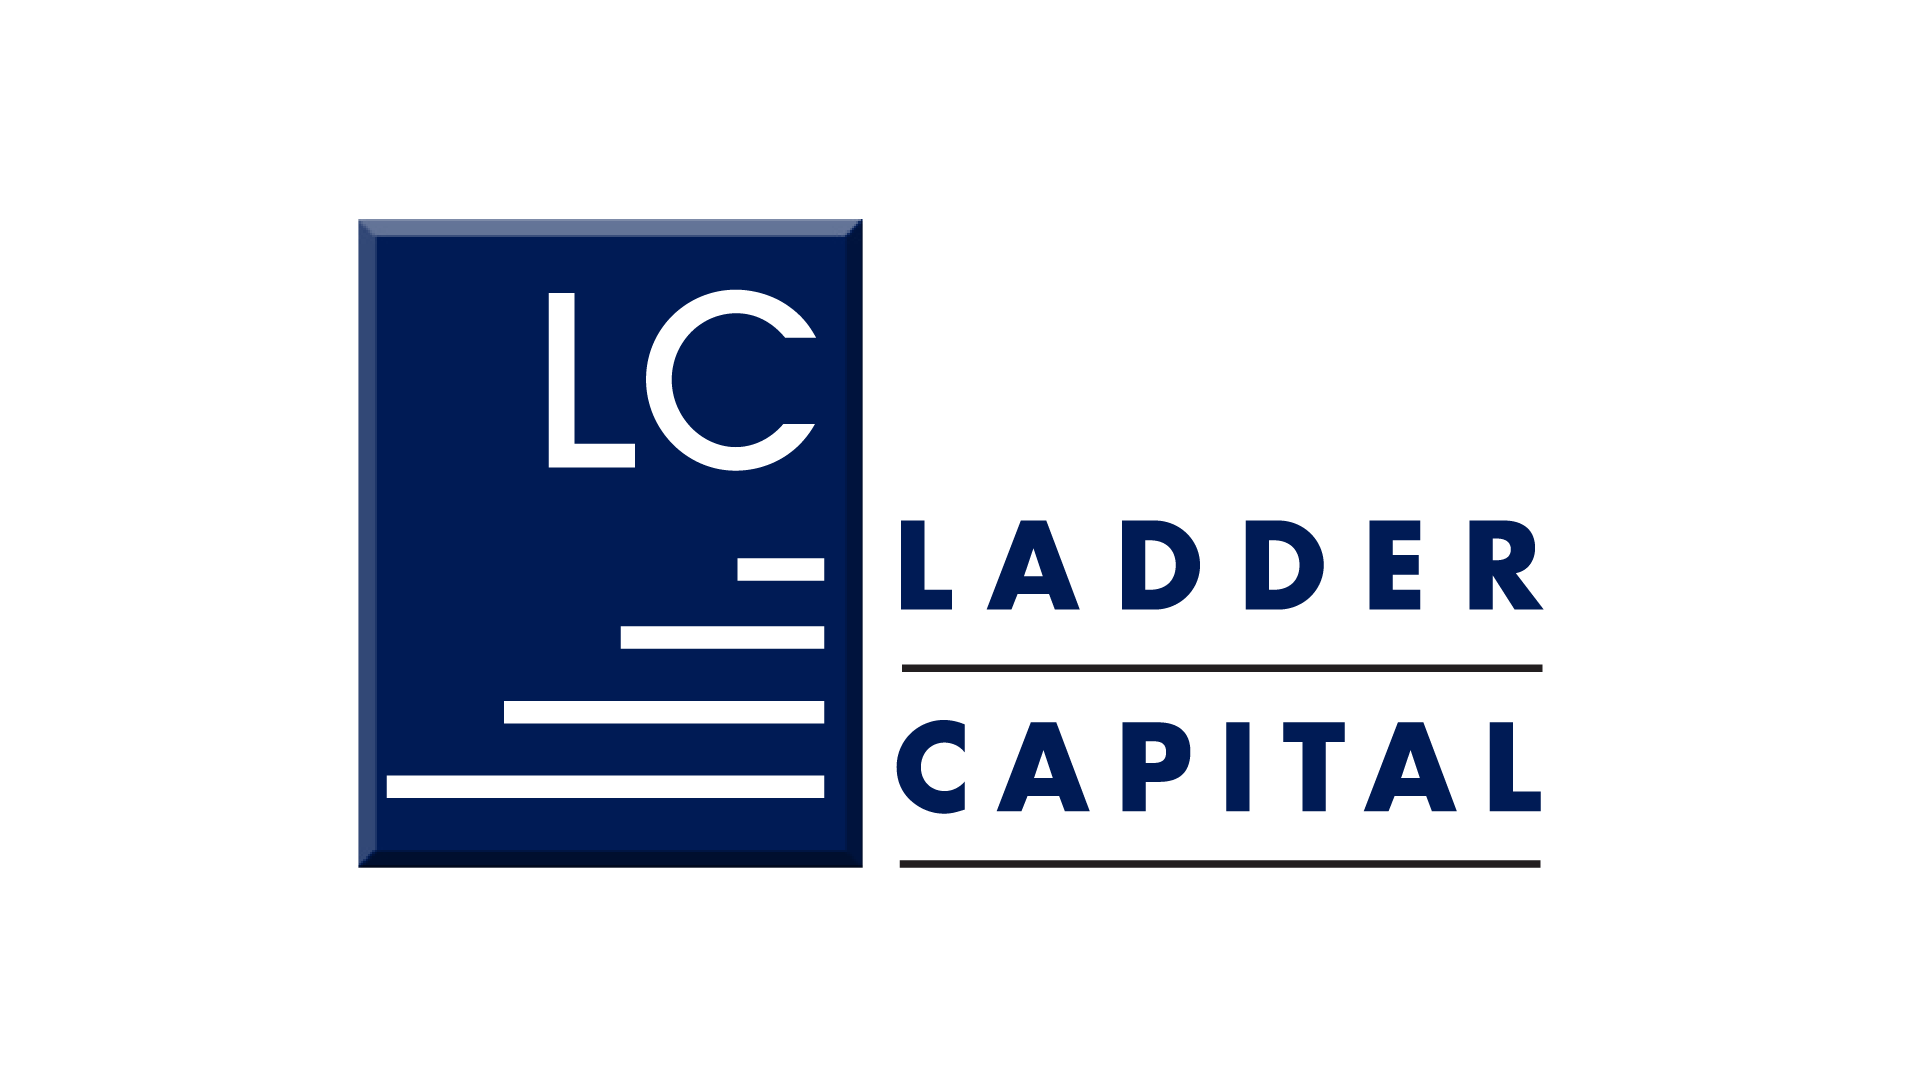 Ladder Capital Corp